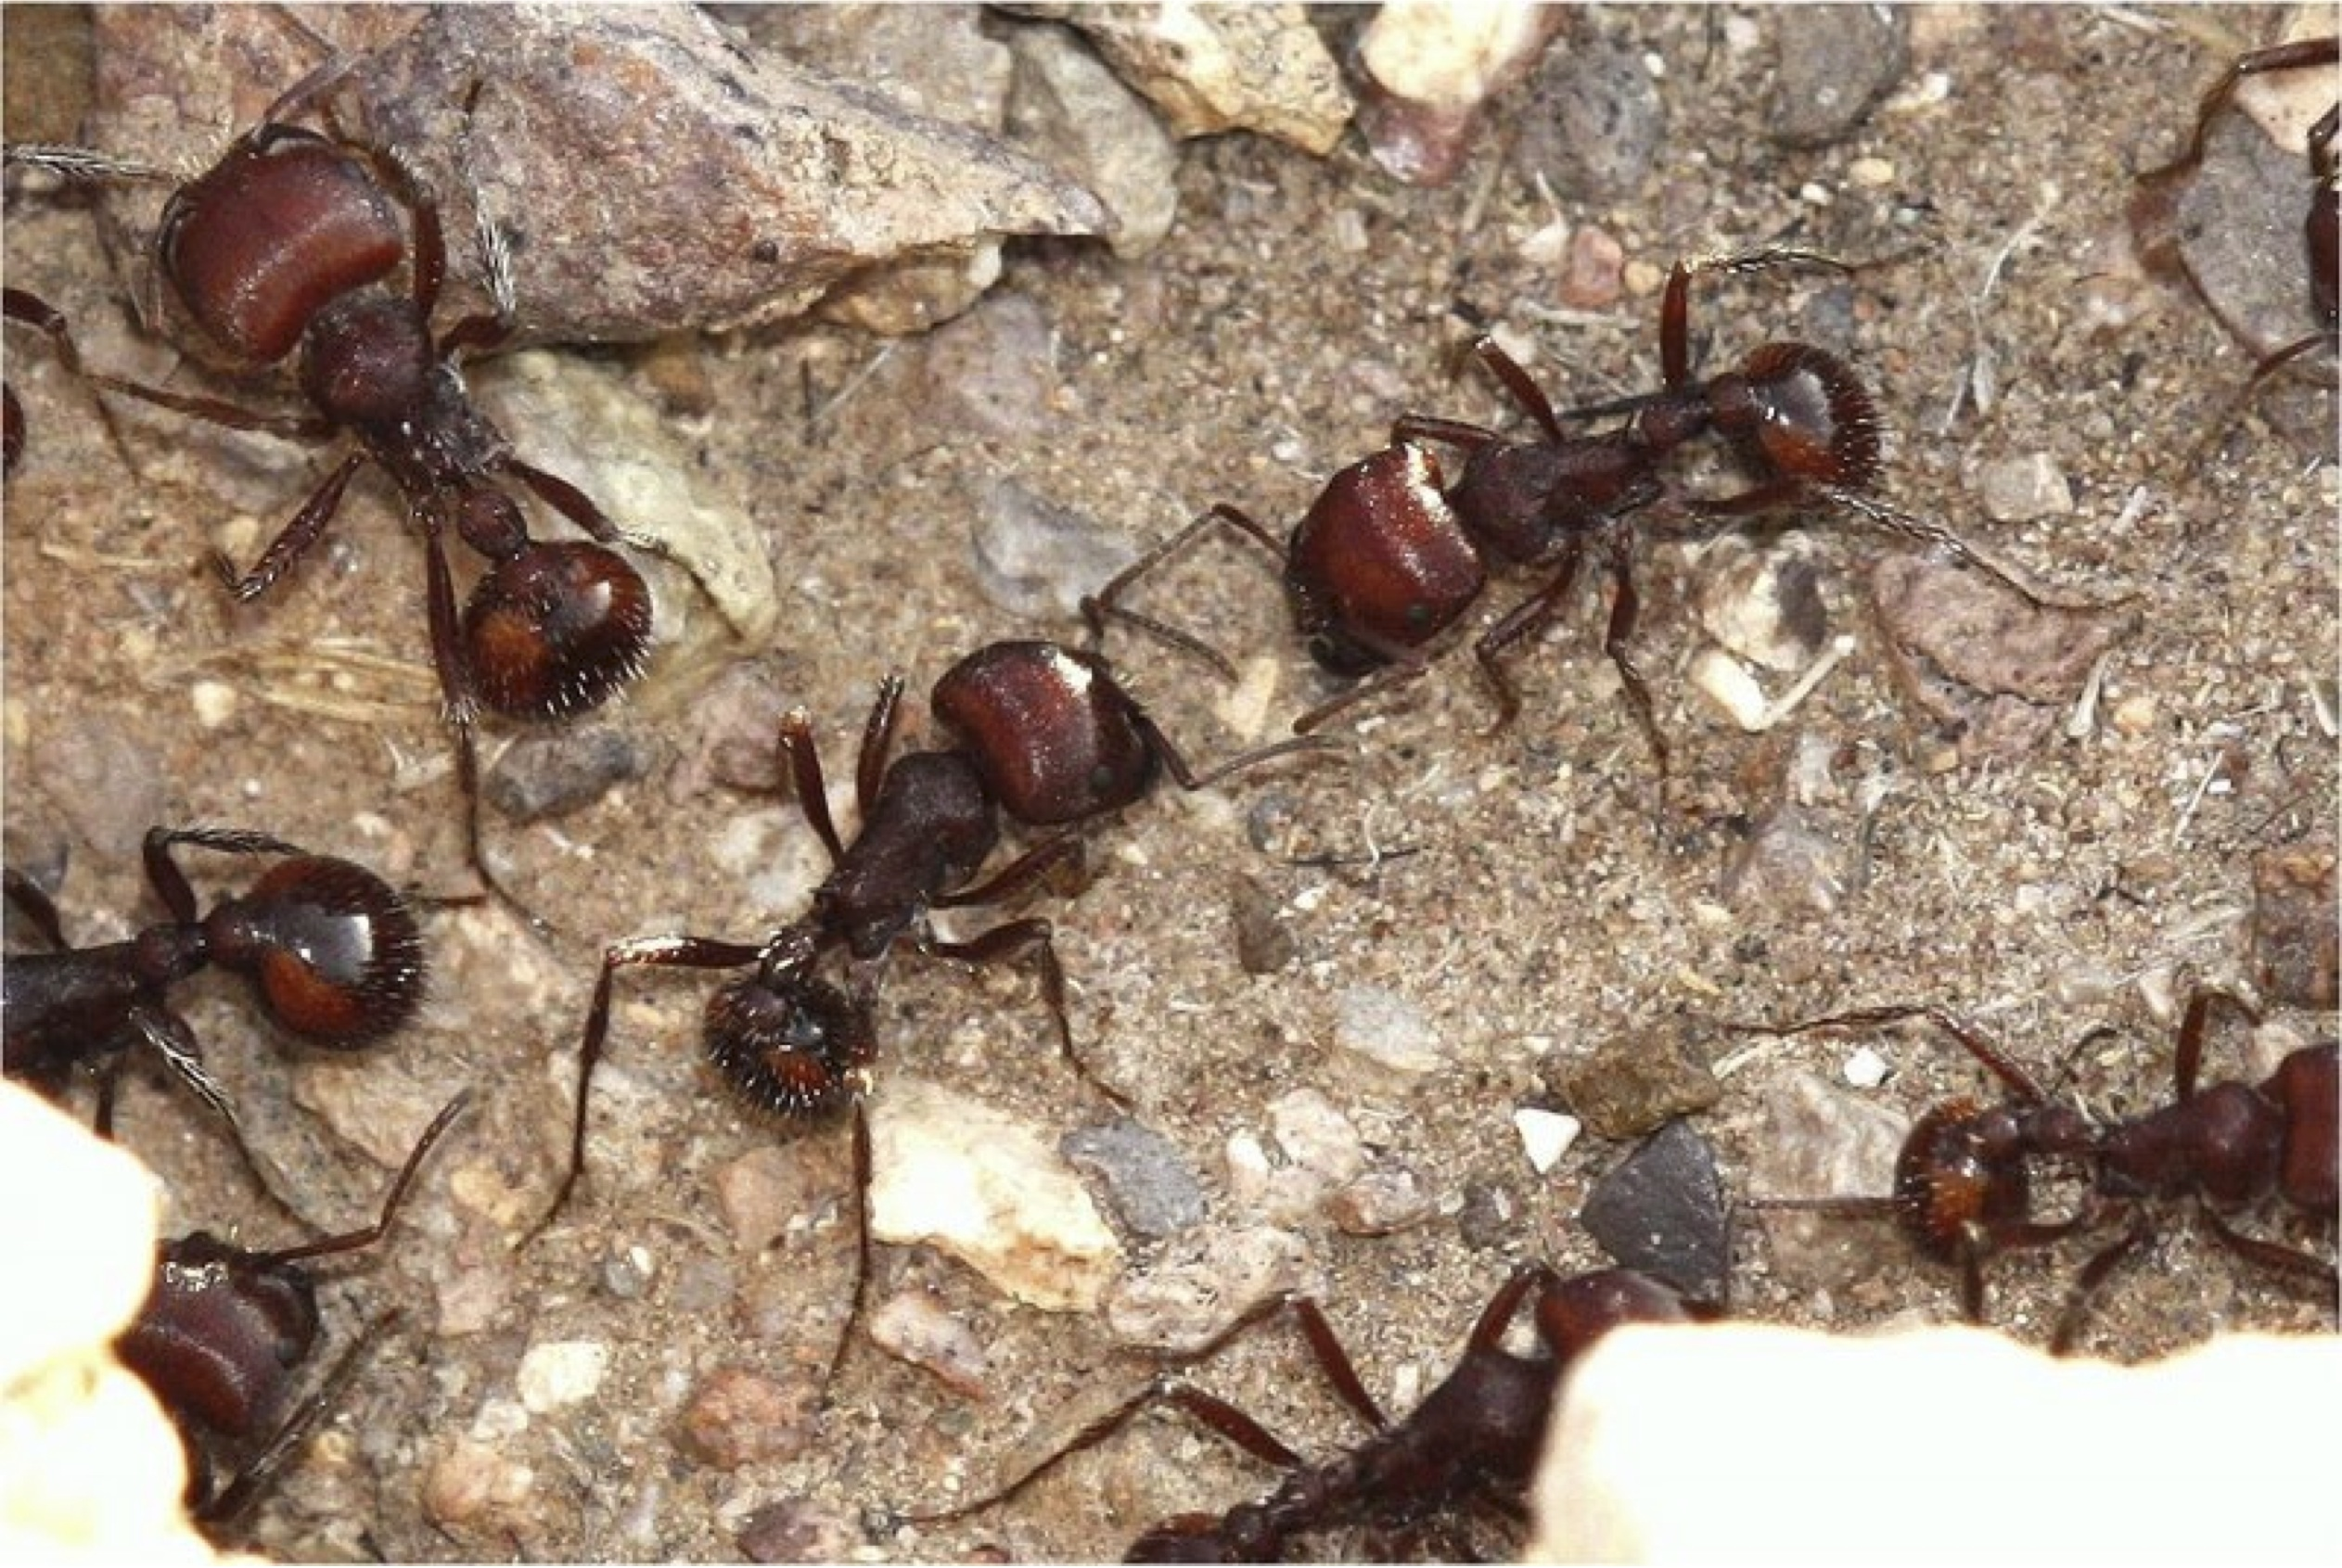 shapes new rules for ant behavior